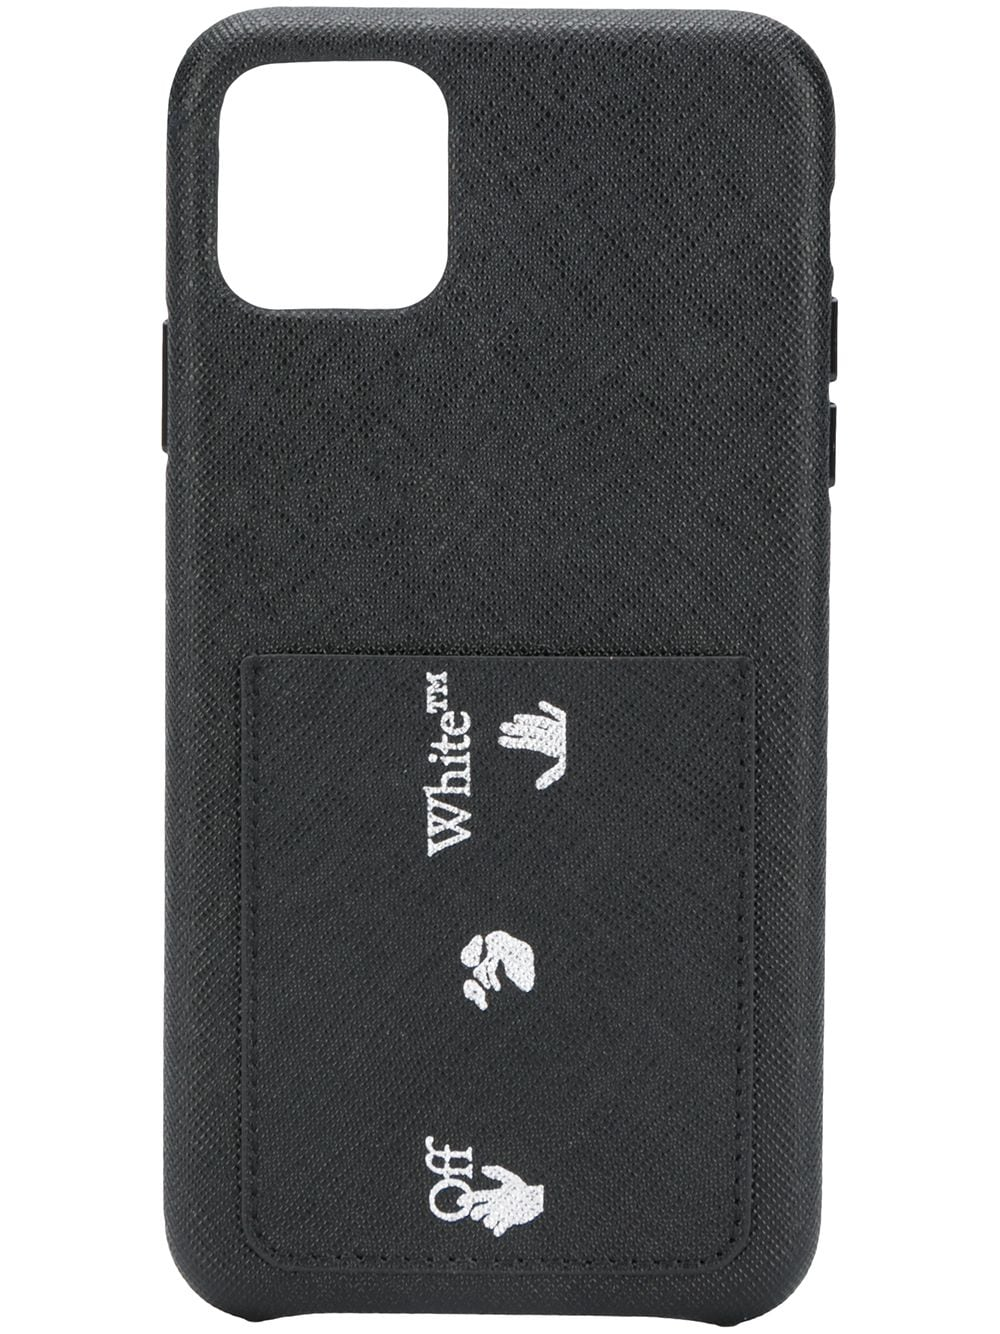 OFF-WHITE SAFFIANO IPHONE 11 PRO MAX CASE